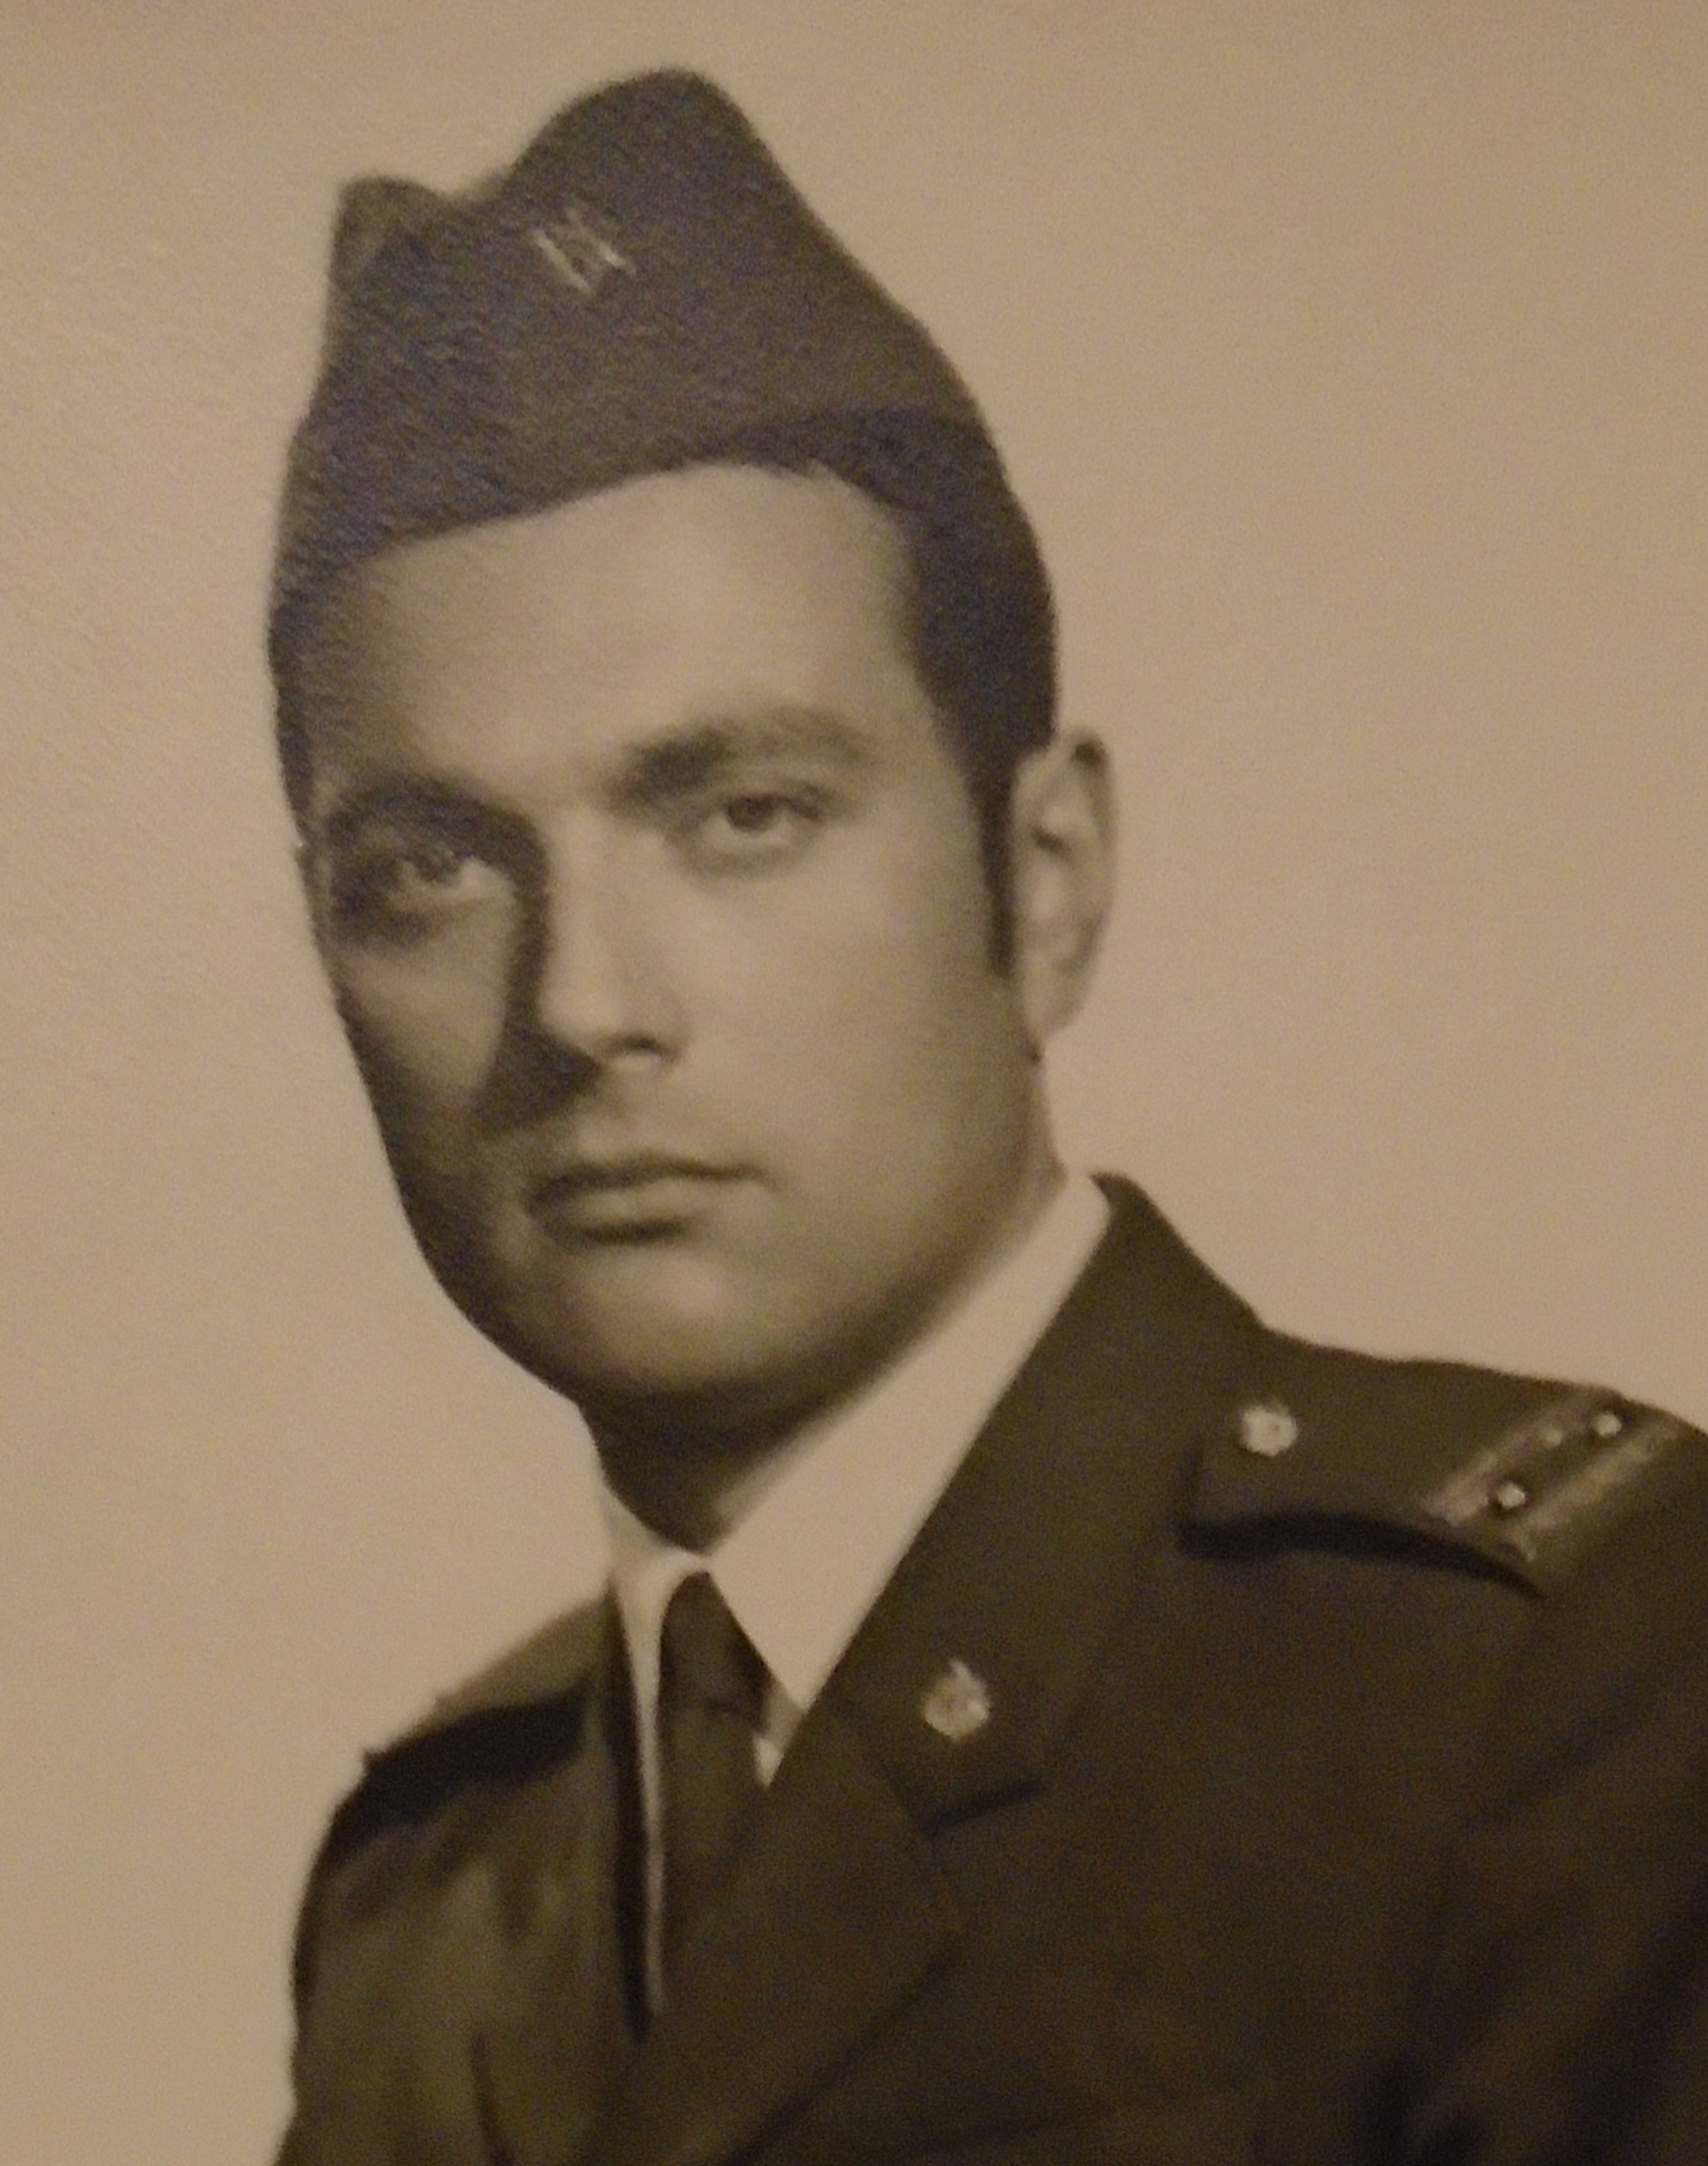 Detail photo of Vit Ryšánek in the army in 1968